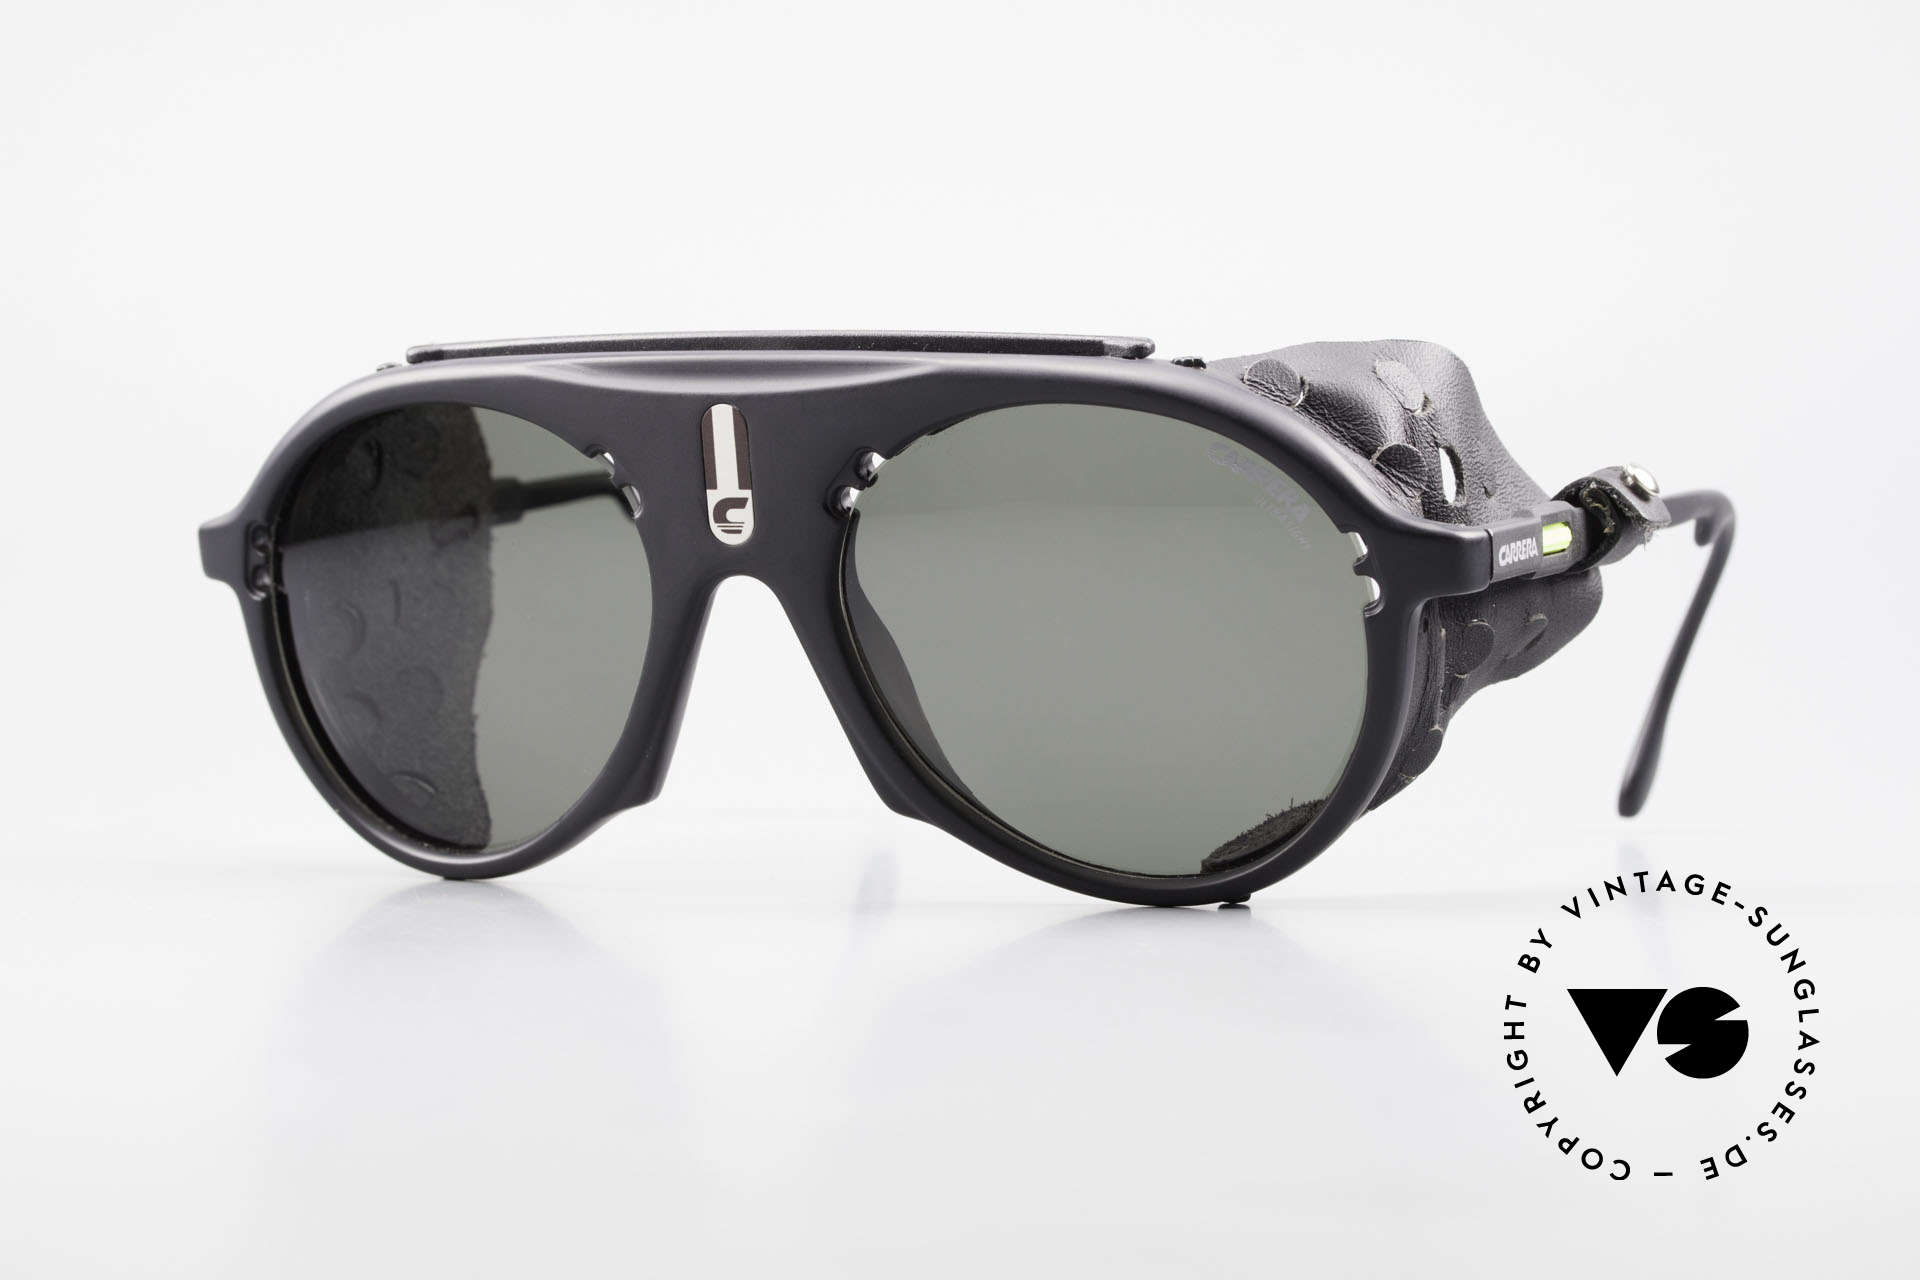 Carrera 5436 Glacier Shades Water & Ice, vintage sports and glacier sunglasses by CARRERA, Made for Men